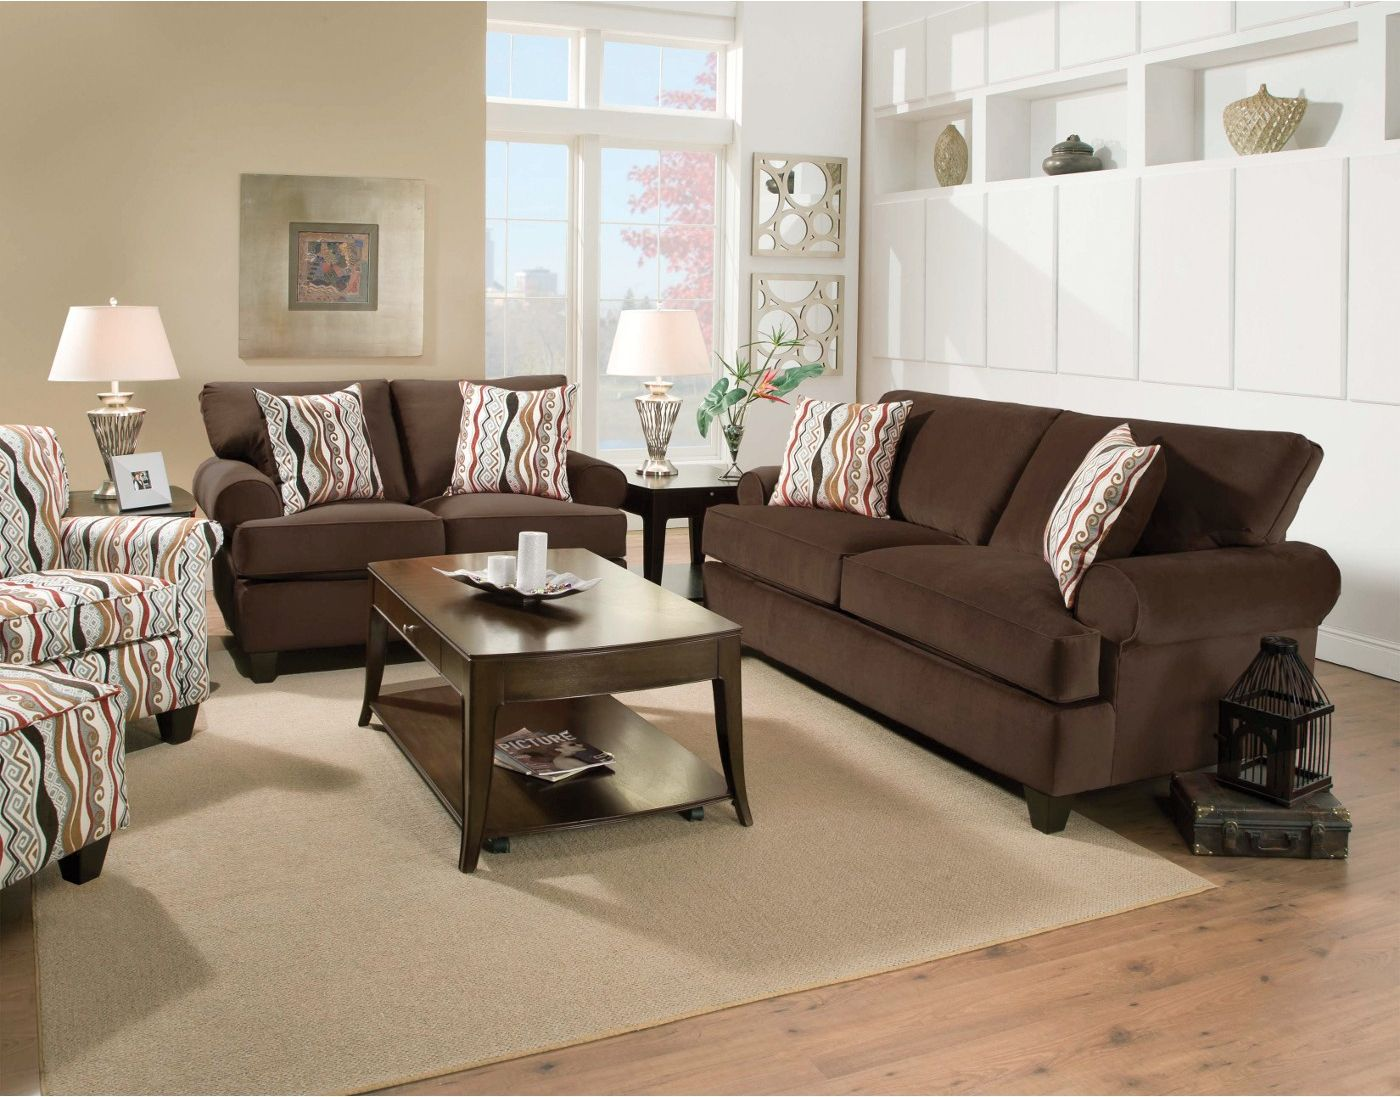 44++ Red sectional living room set info